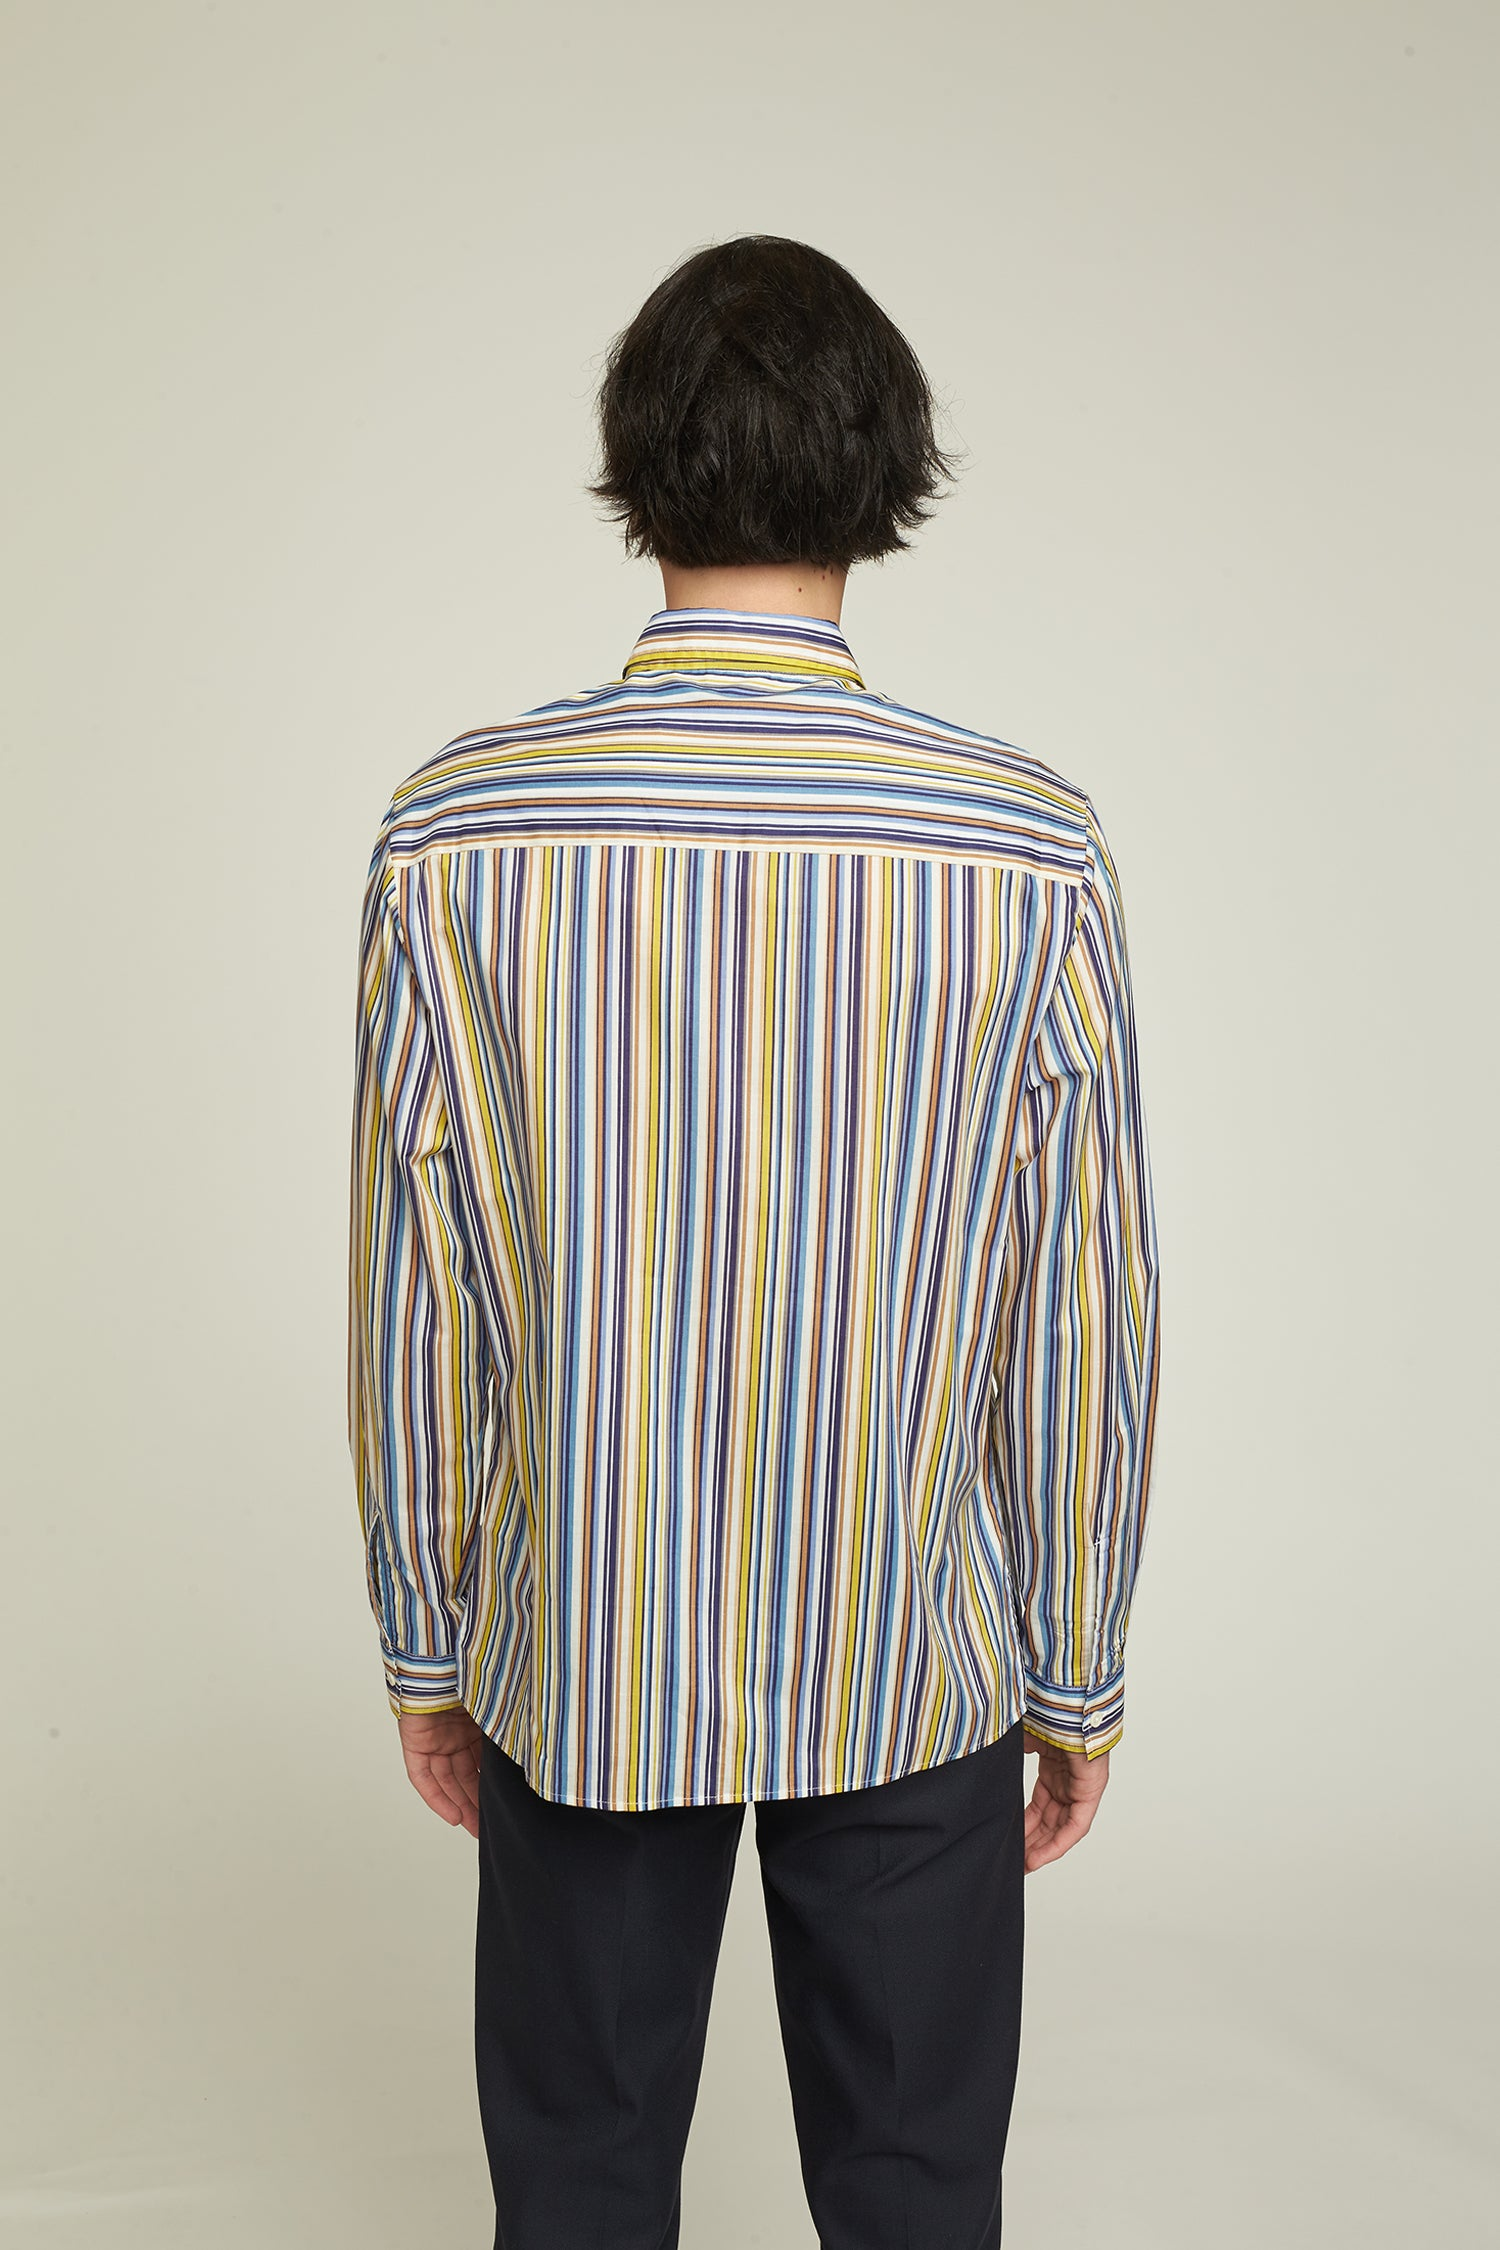 Loose-fitting shirt cut from Japanese cotton.